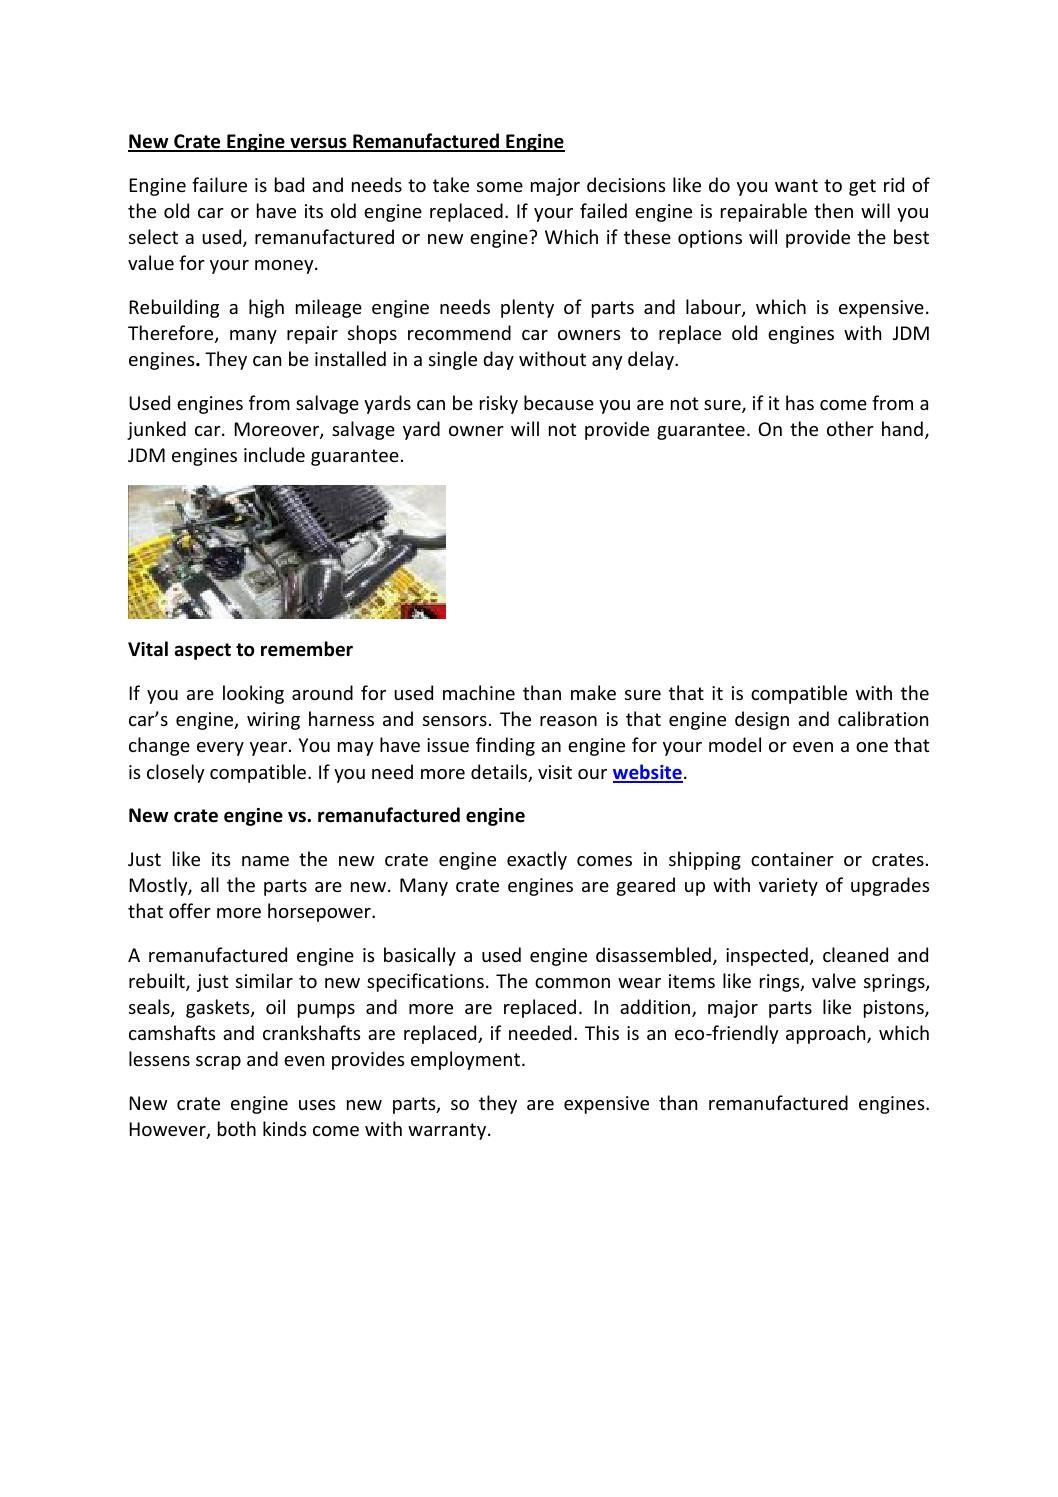 New Crate Engine Versus Remanufactured By Scarlet Vapor Issuu S Wiring Harness